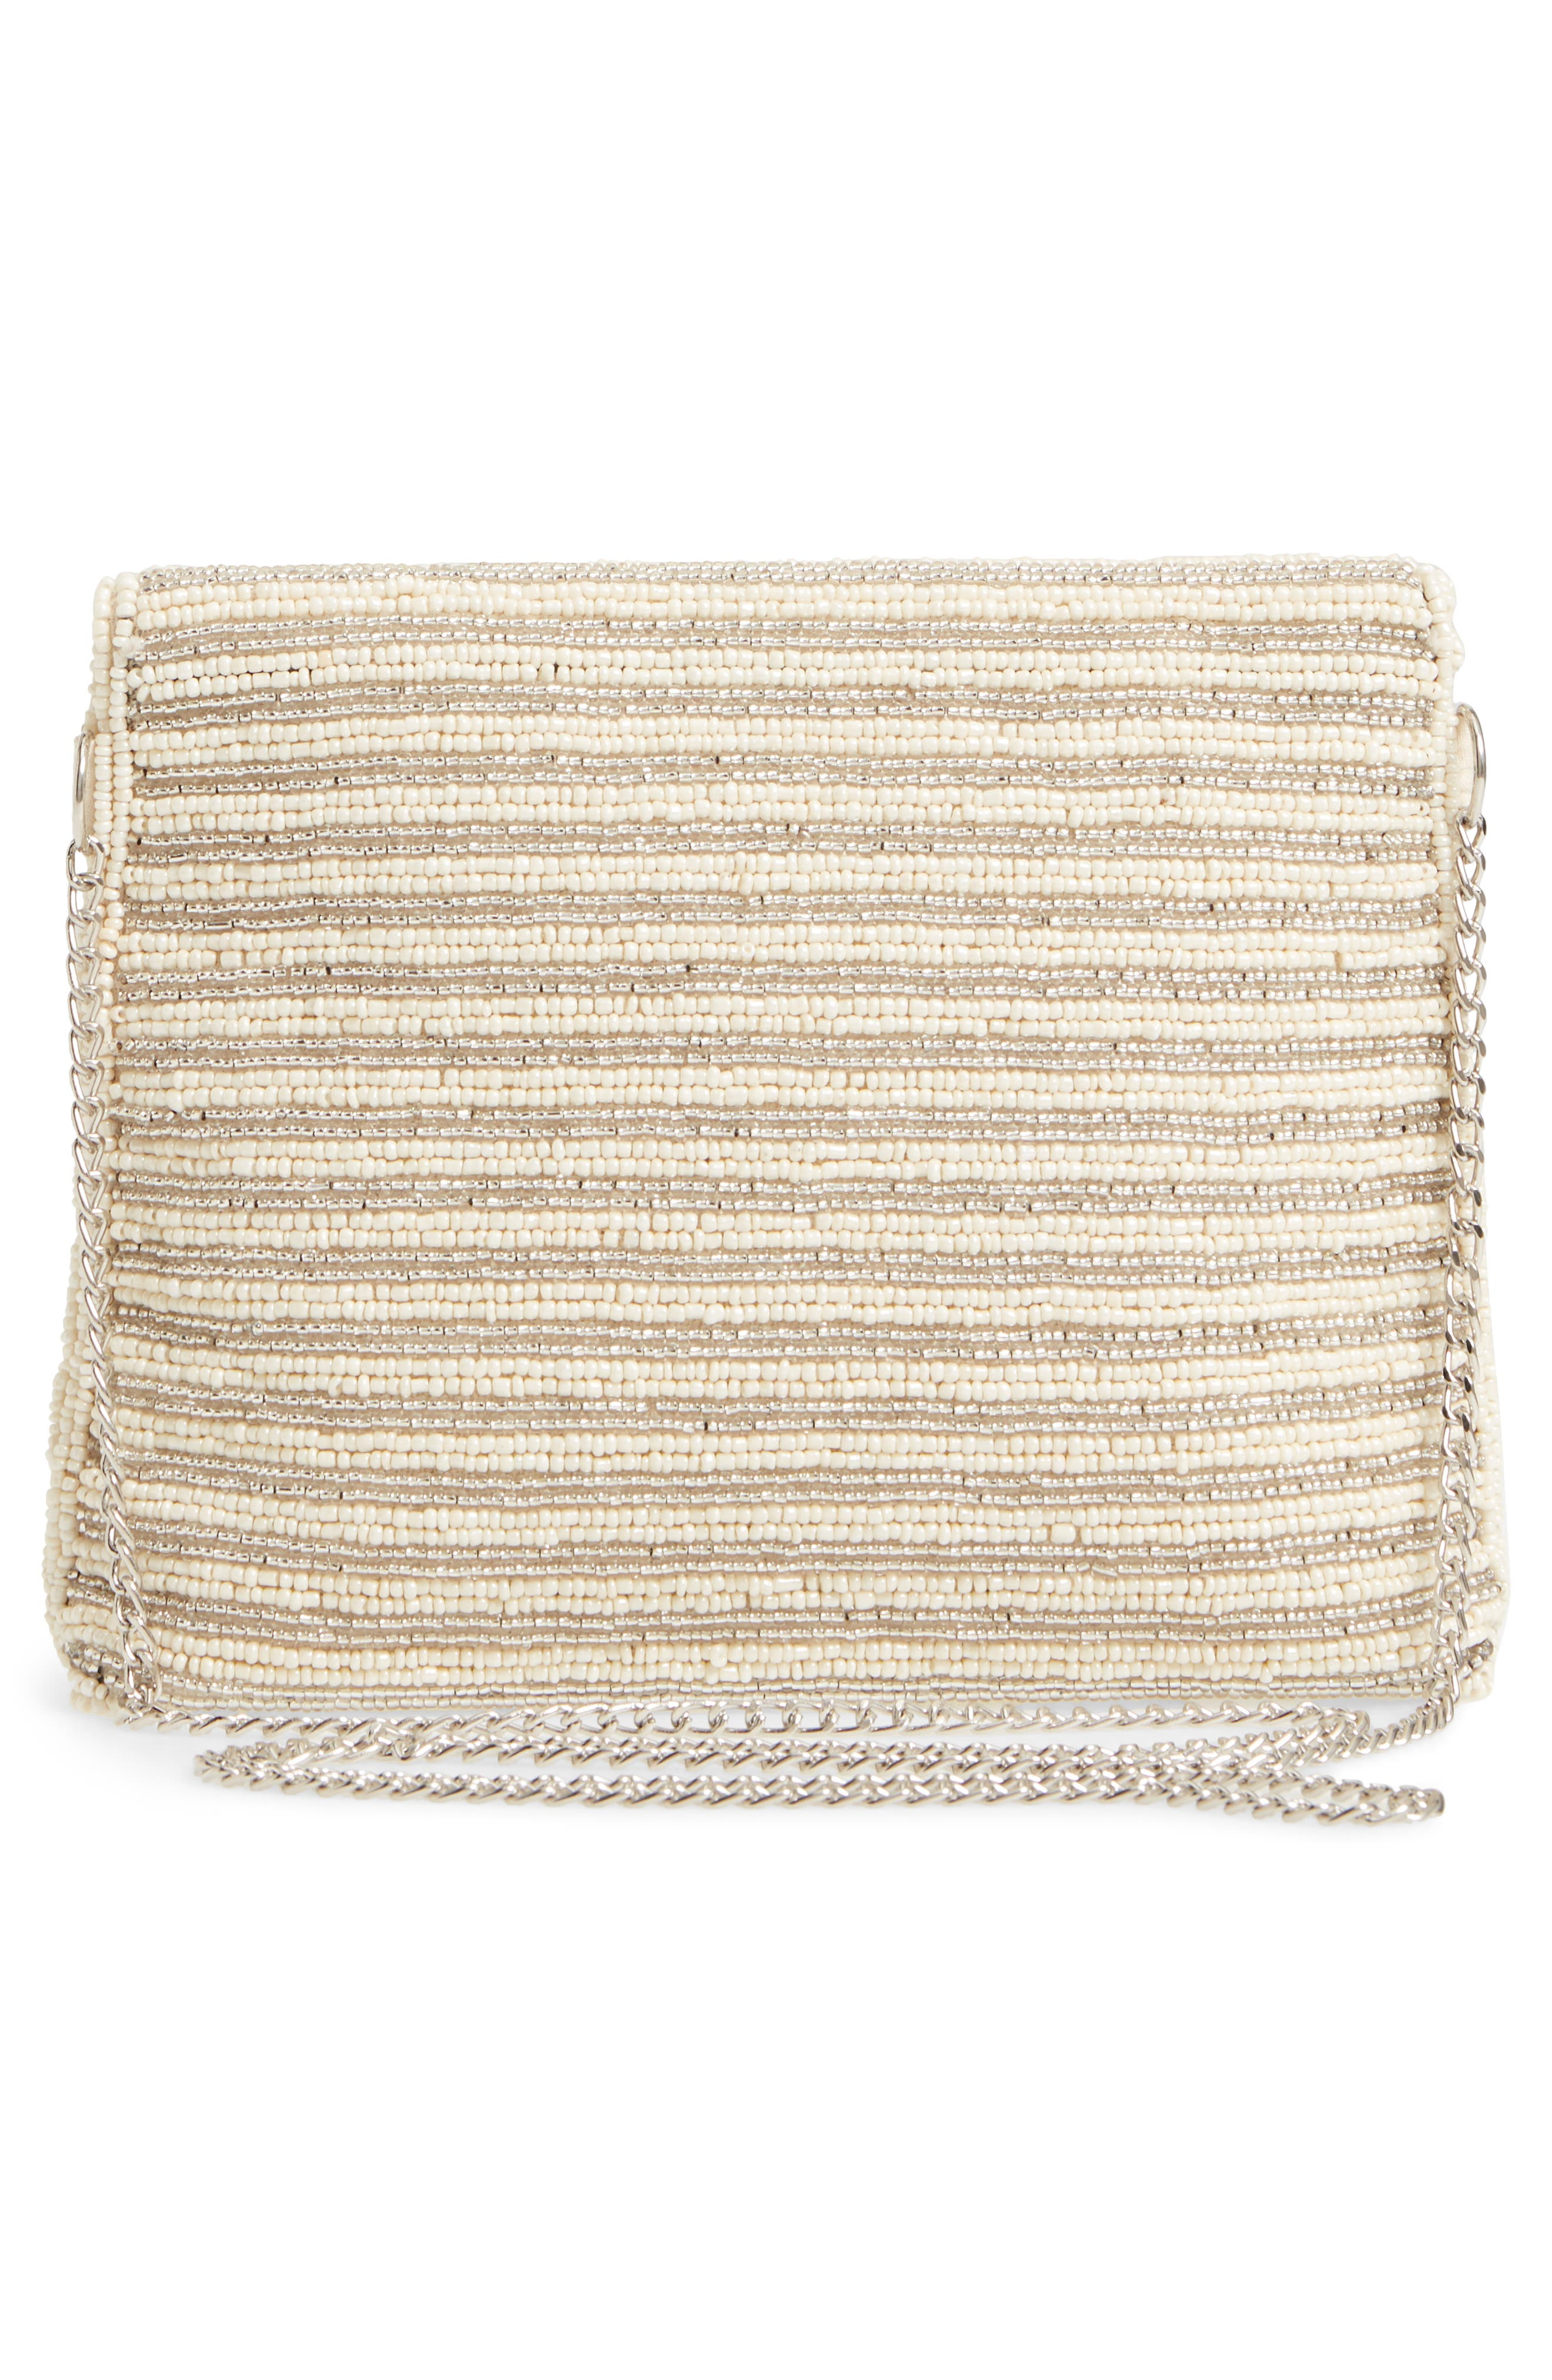 Beaded Clutch,                             Alternate thumbnail 3, color,                             900